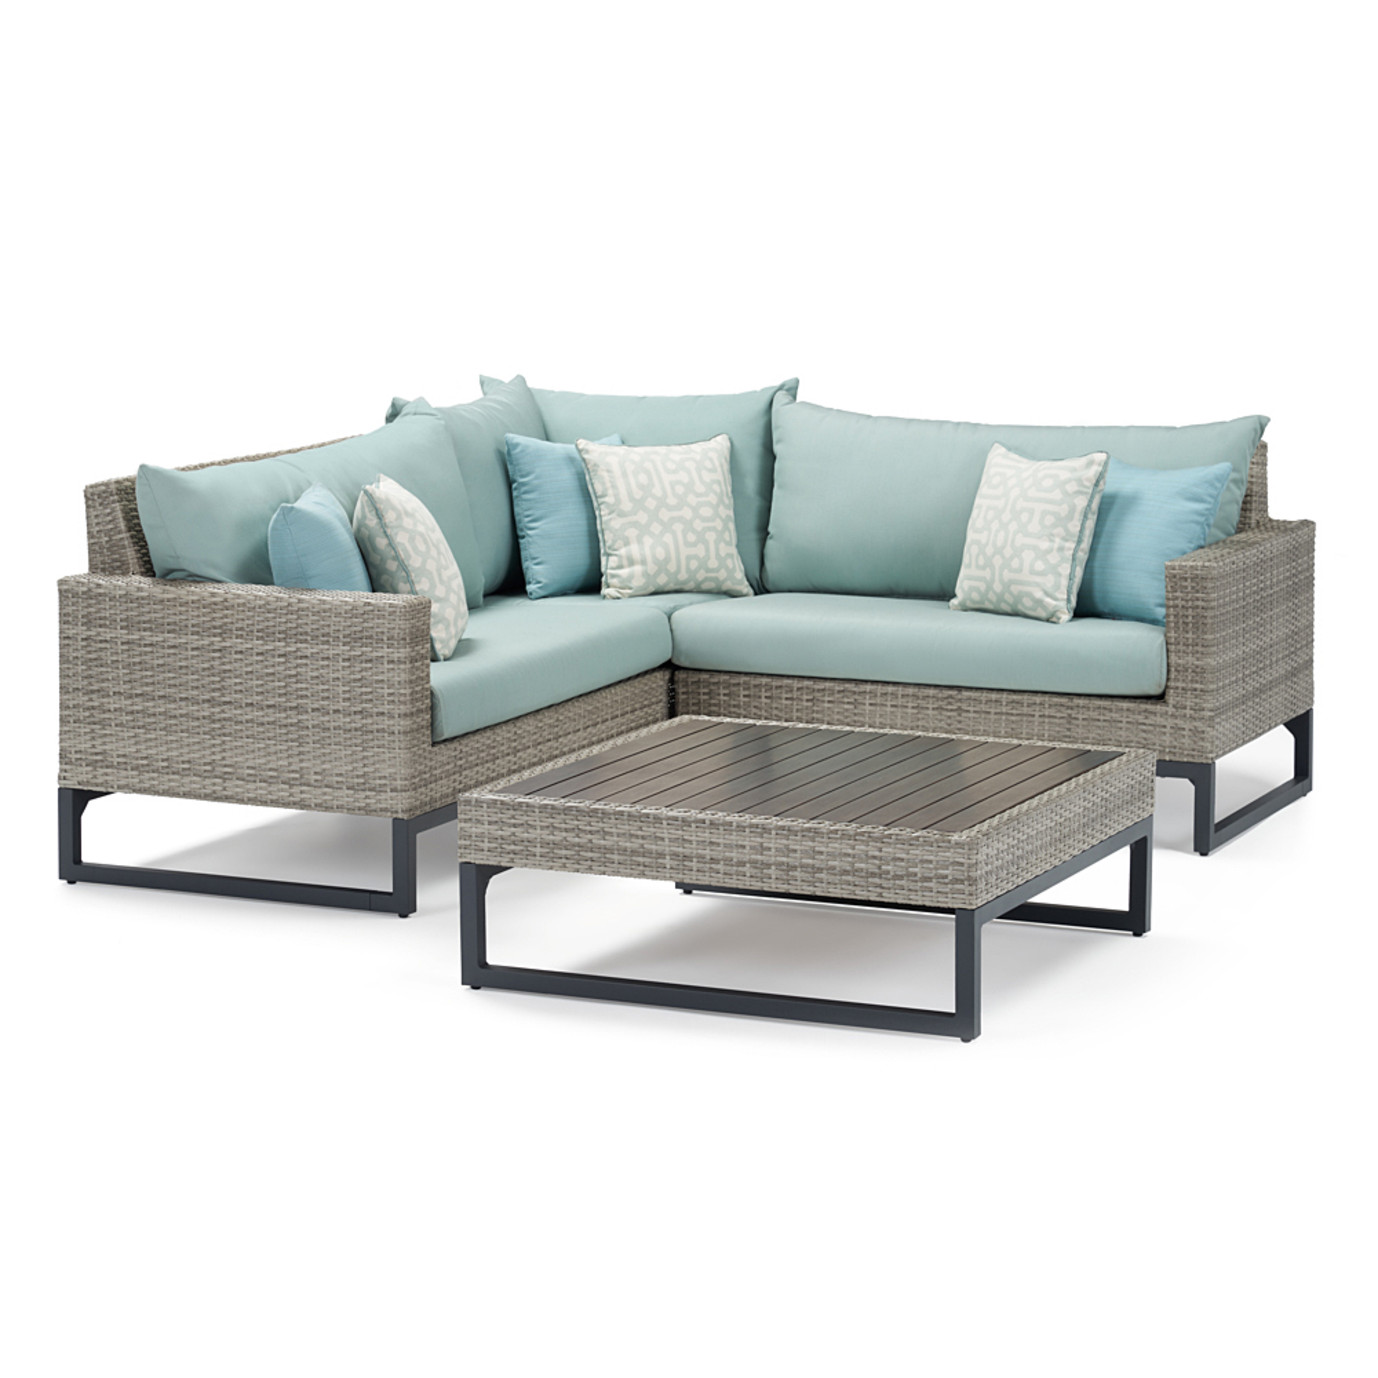 Milo Gray 4 Piece Sectional - Spa Blue